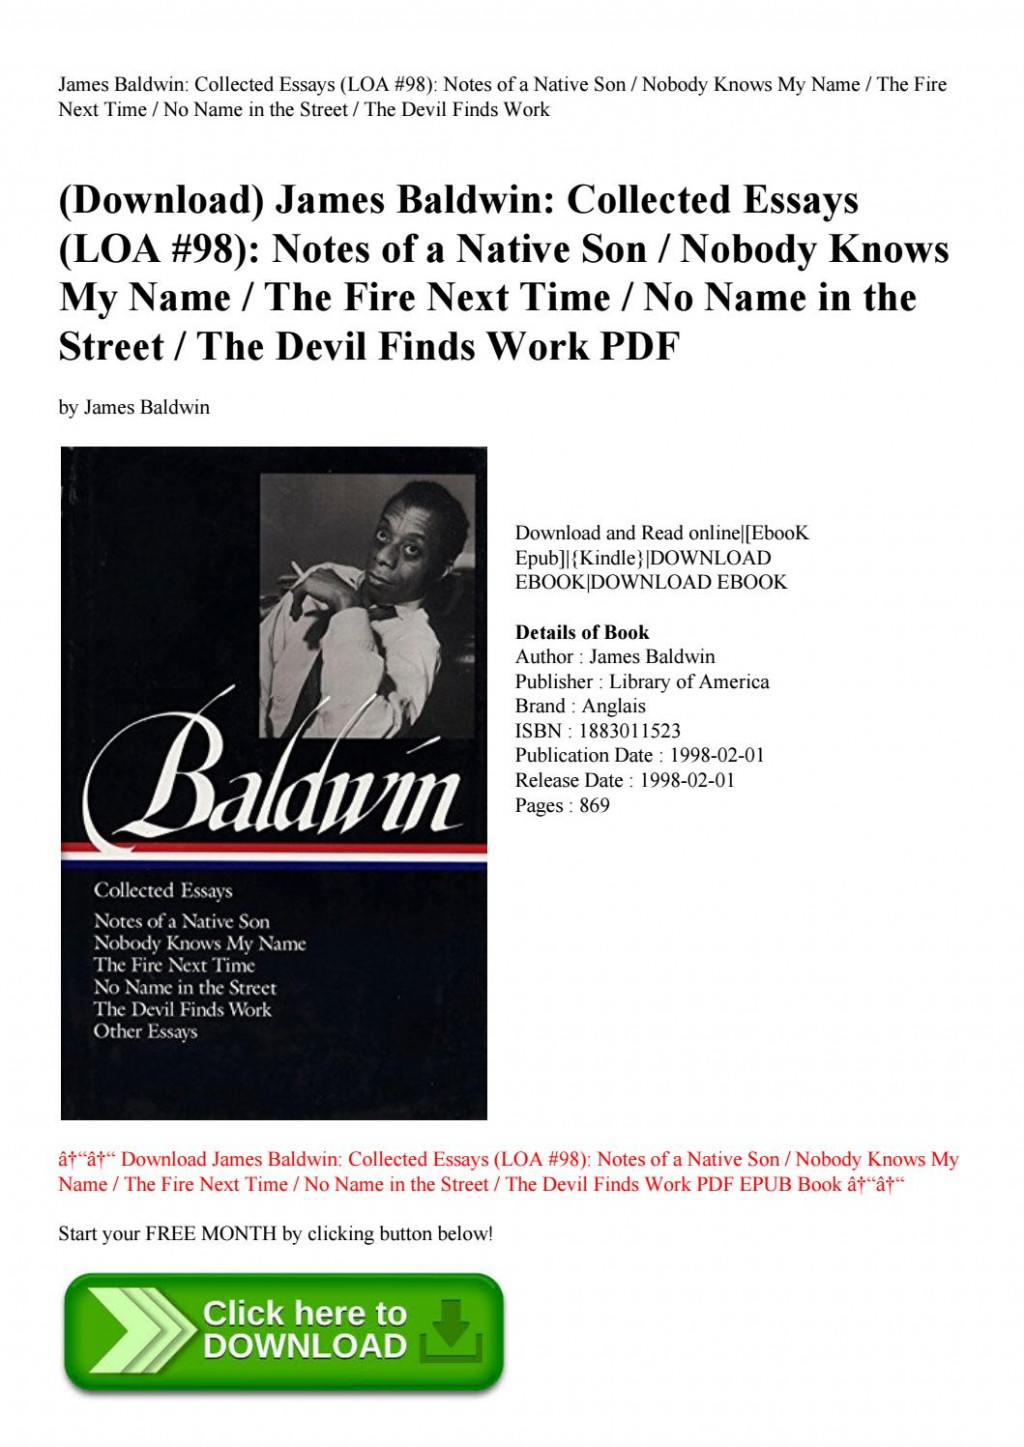 010 Page 1 Essay Example James Baldwin Collected Wondrous Essays Google Books Pdf Table Of Contents Large